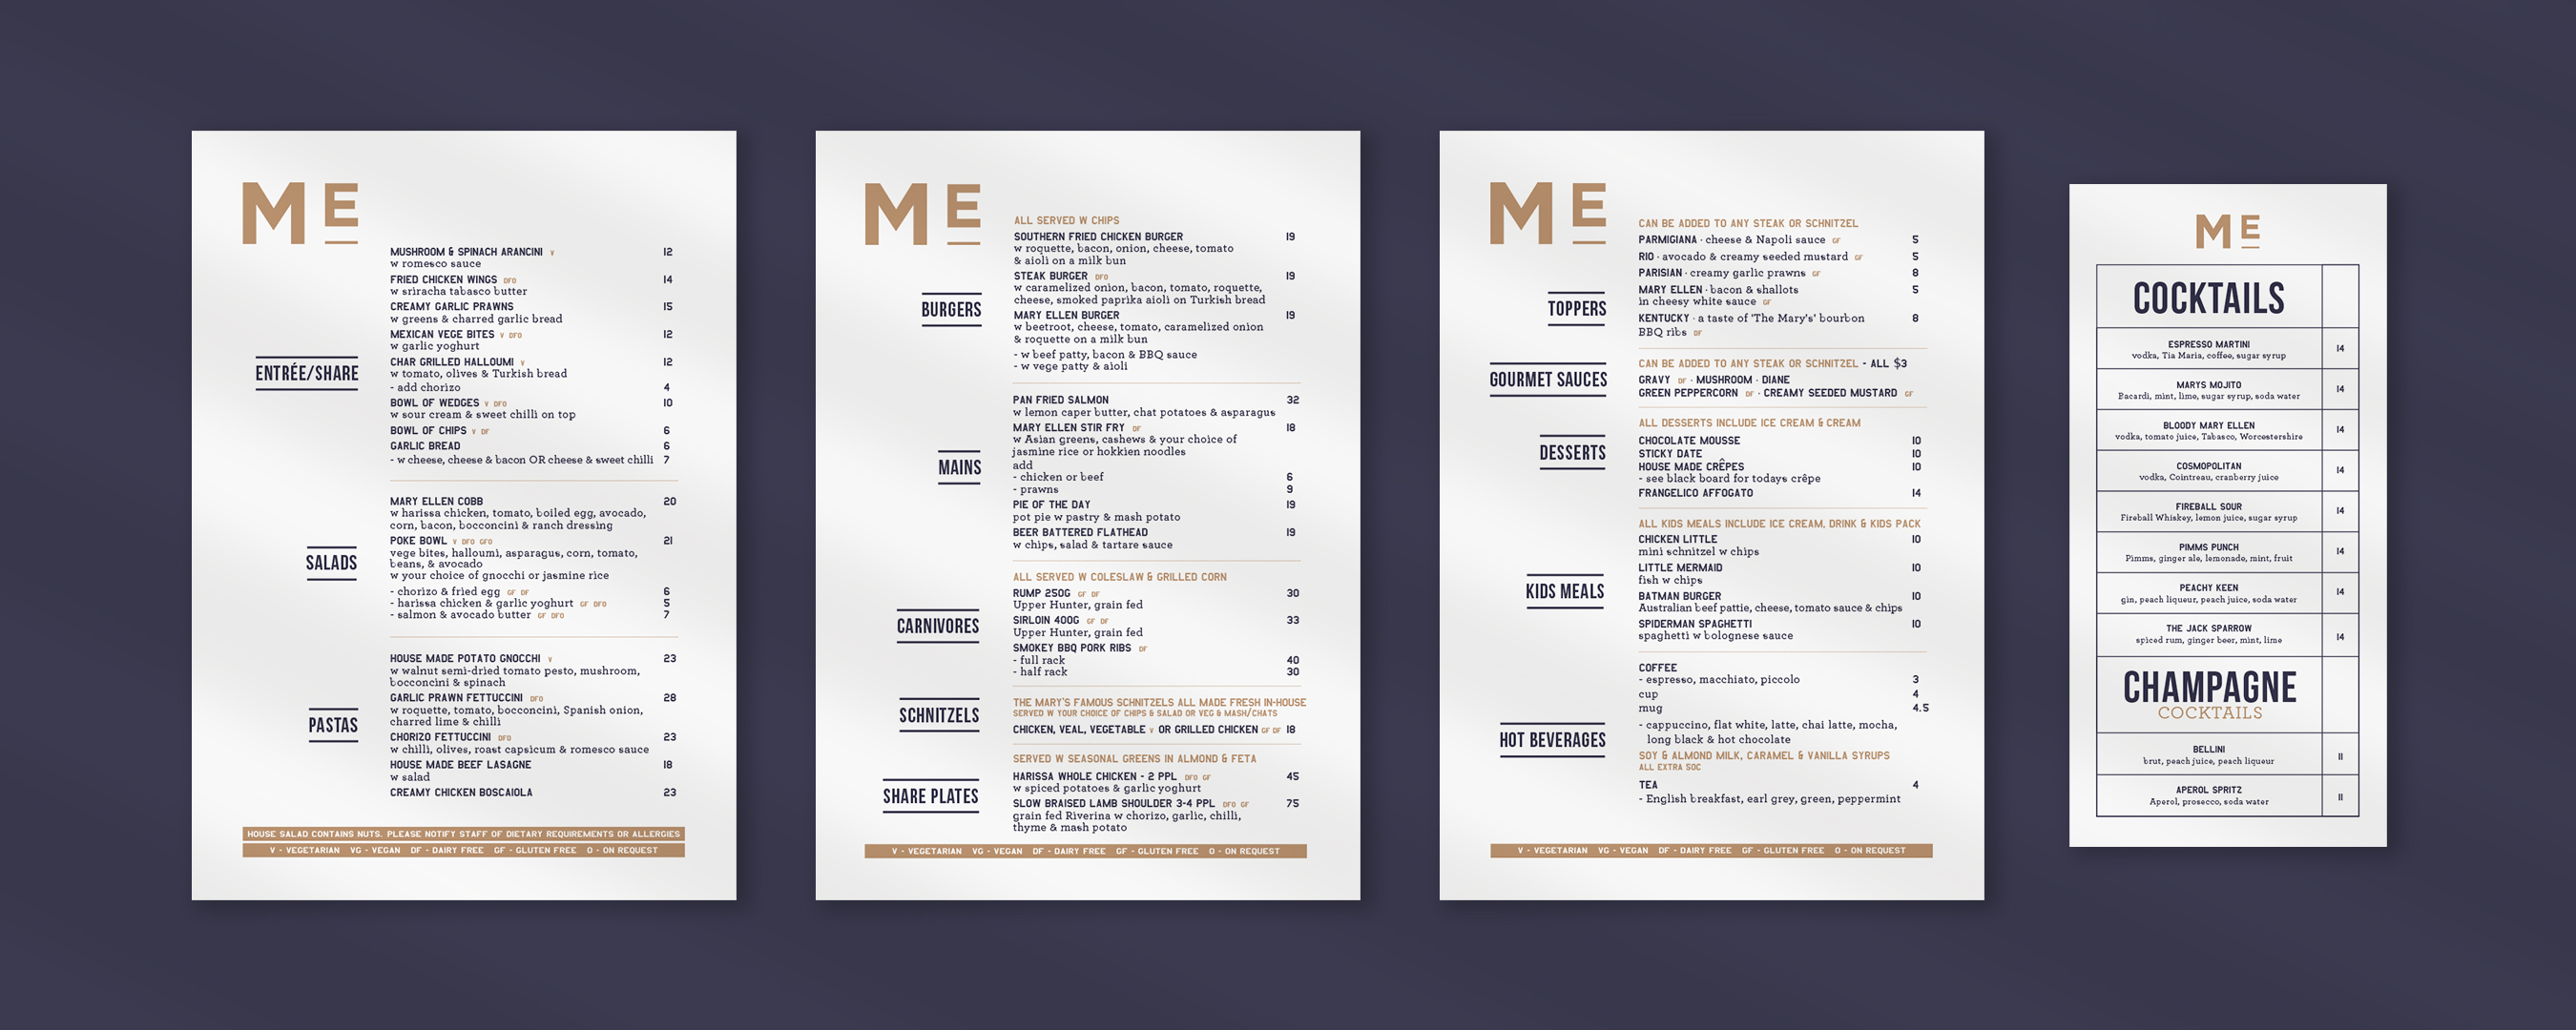 Food and cocktail menu design for Mary Ellen Hotel